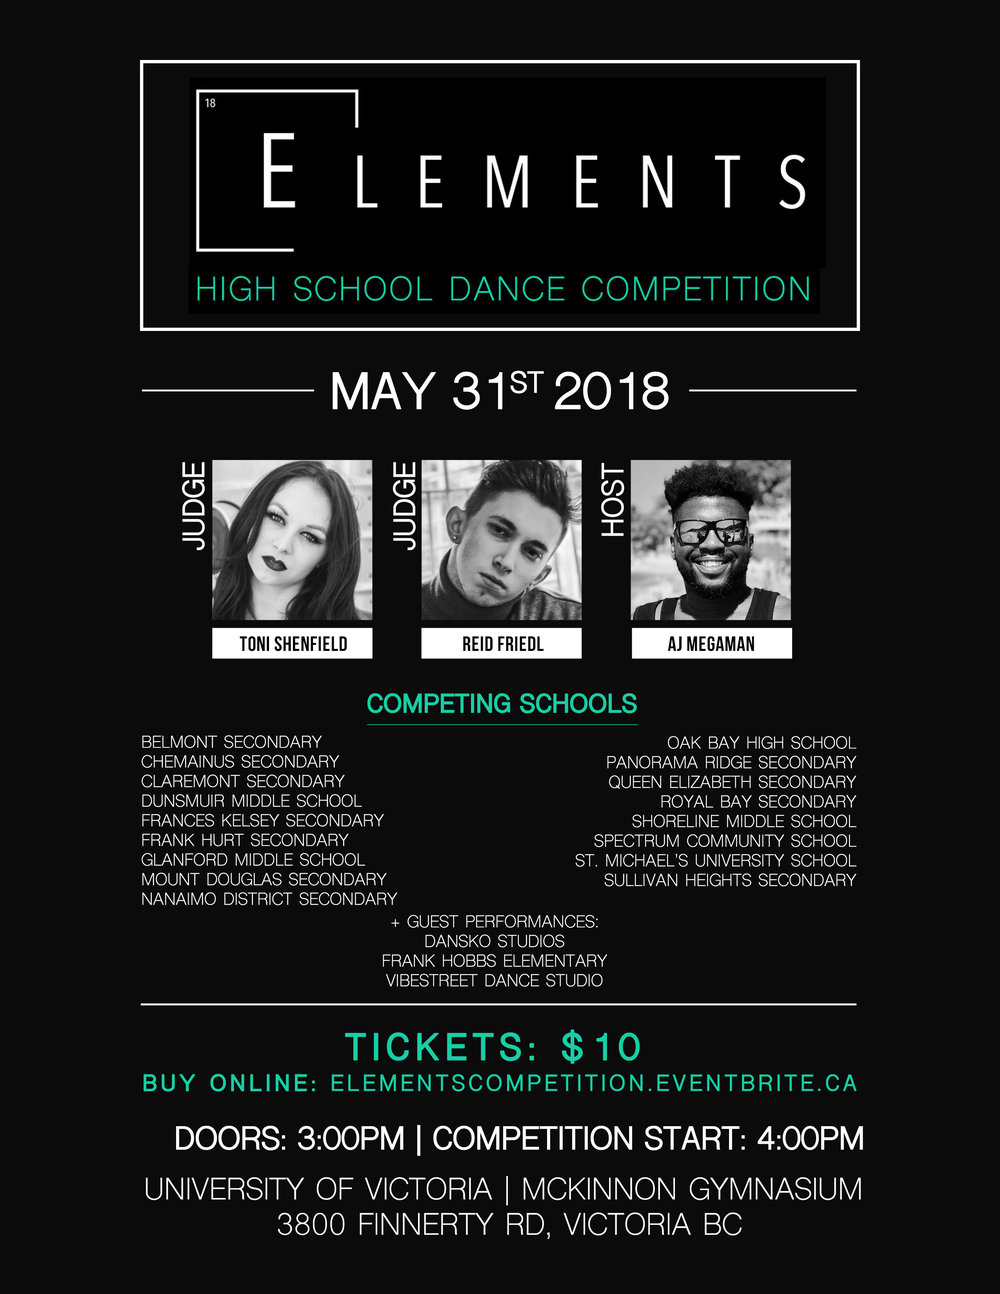 Elements Main Flyer 2018.jpg